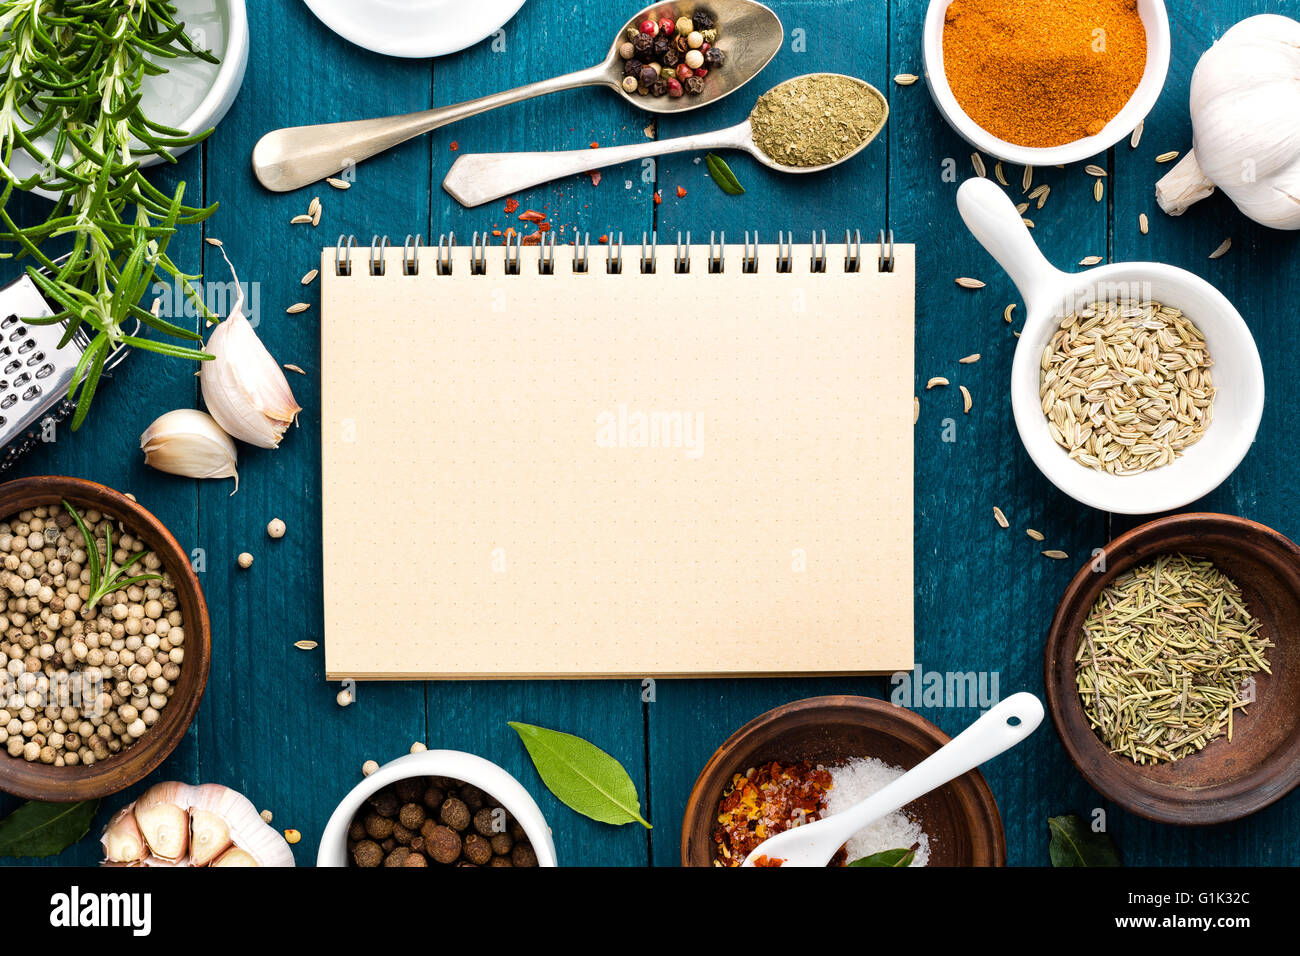 culinary background and recipe book with various spices on wooden table - Stock Image